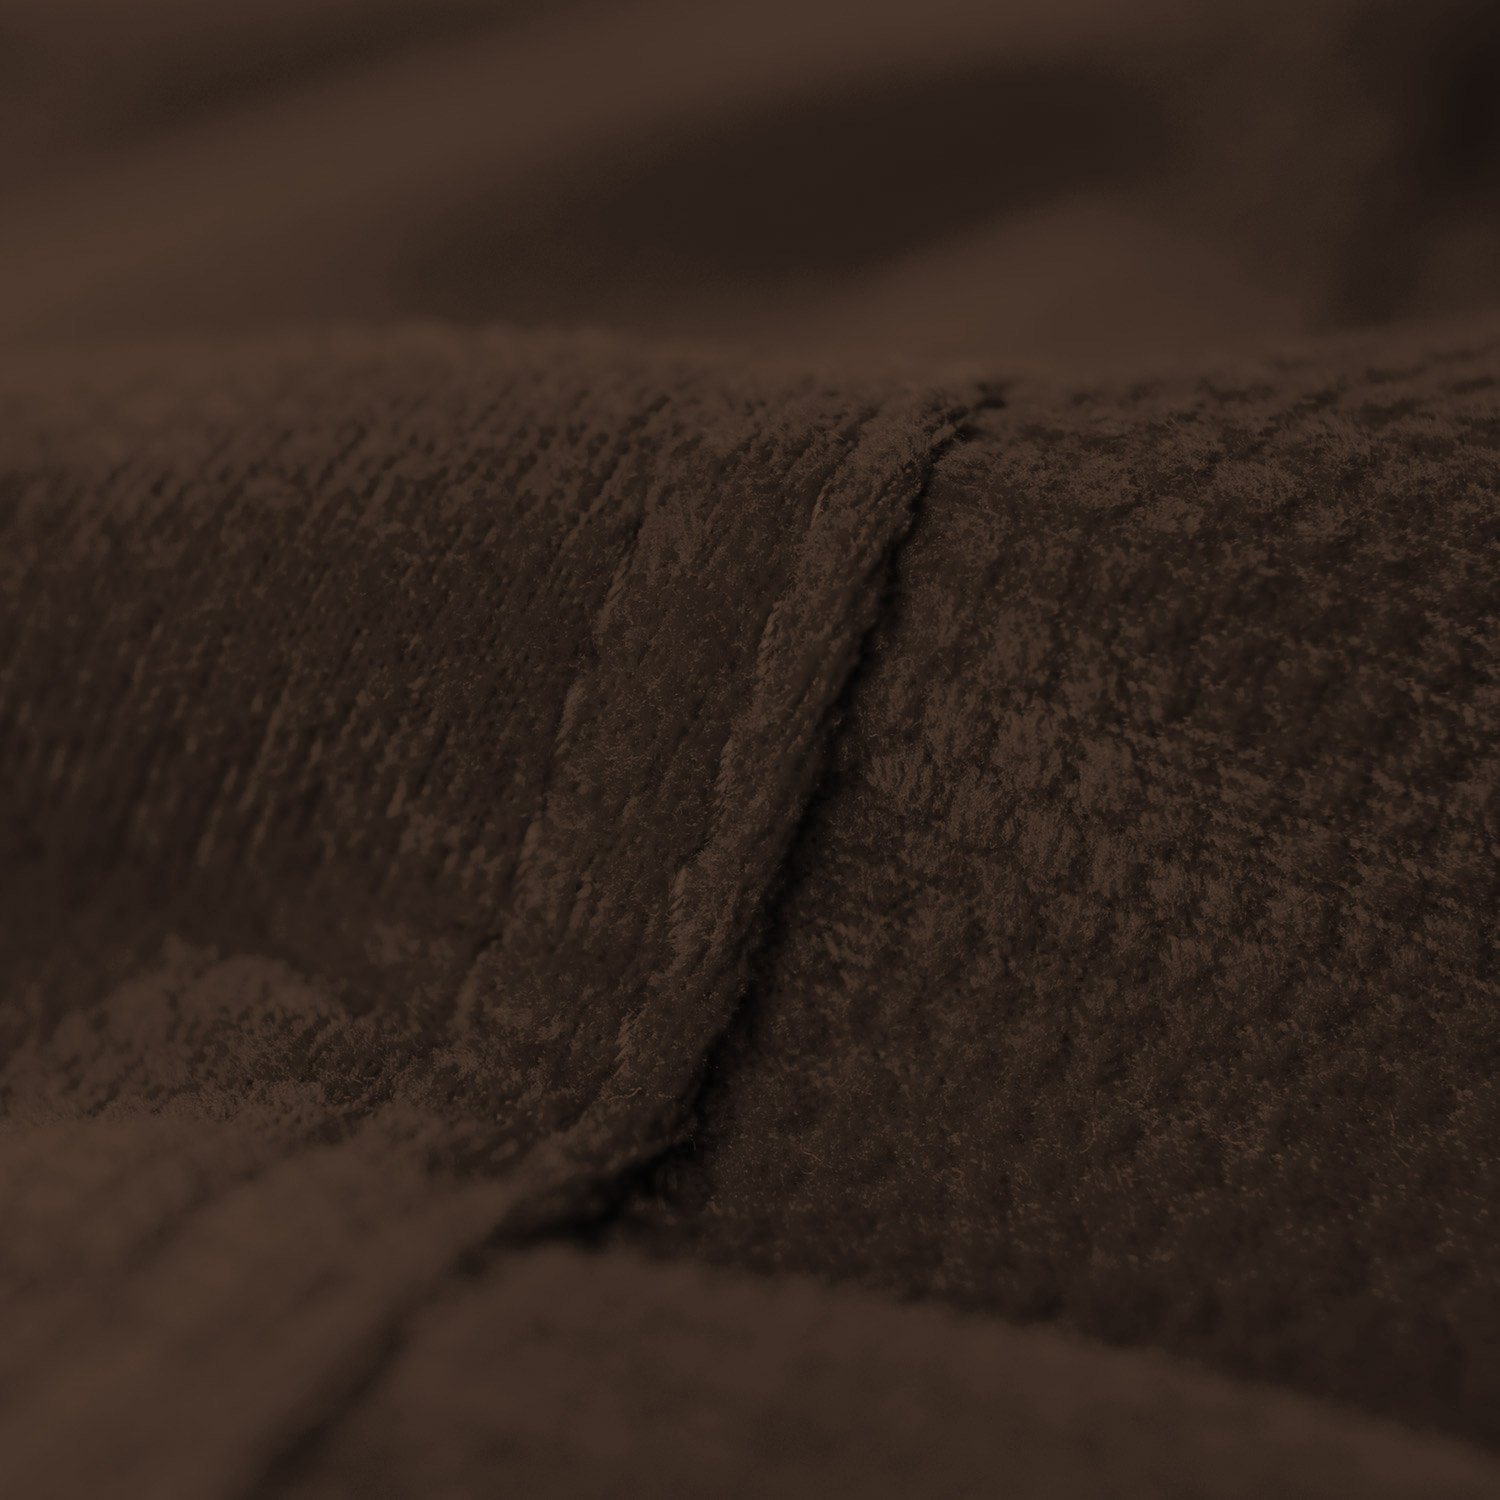 Chill Sack Bean Bag Chair: Huge 5' Memory Foam Furniture Bag and Large Lounger - Big Sofa with Soft Micro Fiber Cover - Brown Pebble by Chill Sack (Image #3)